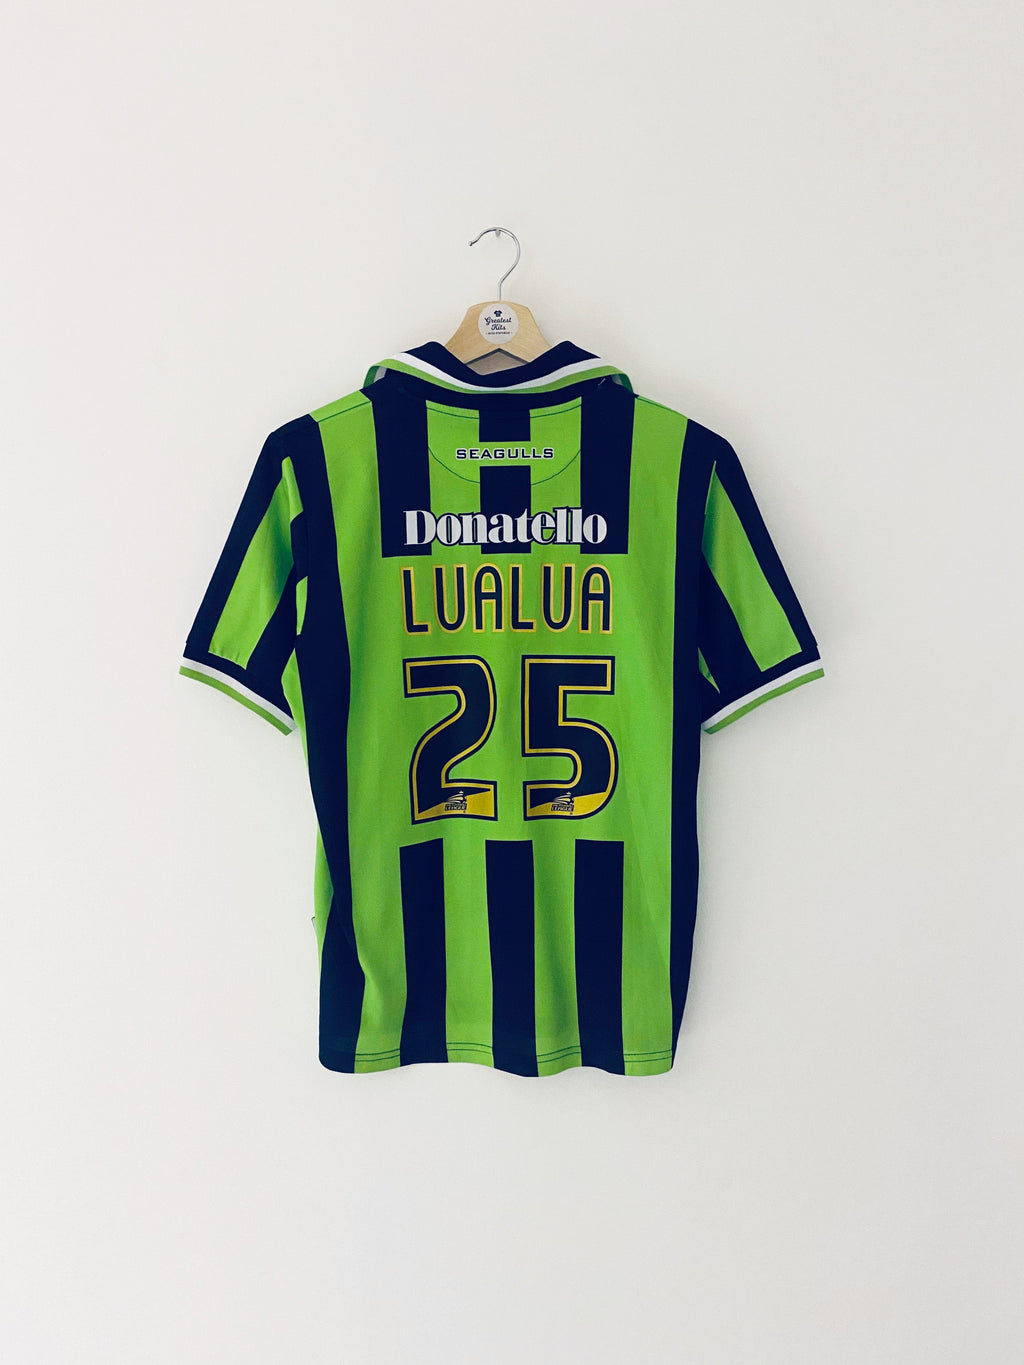 2011/13 Brighton Away Shirt LuaLua #25 (M) 6/10